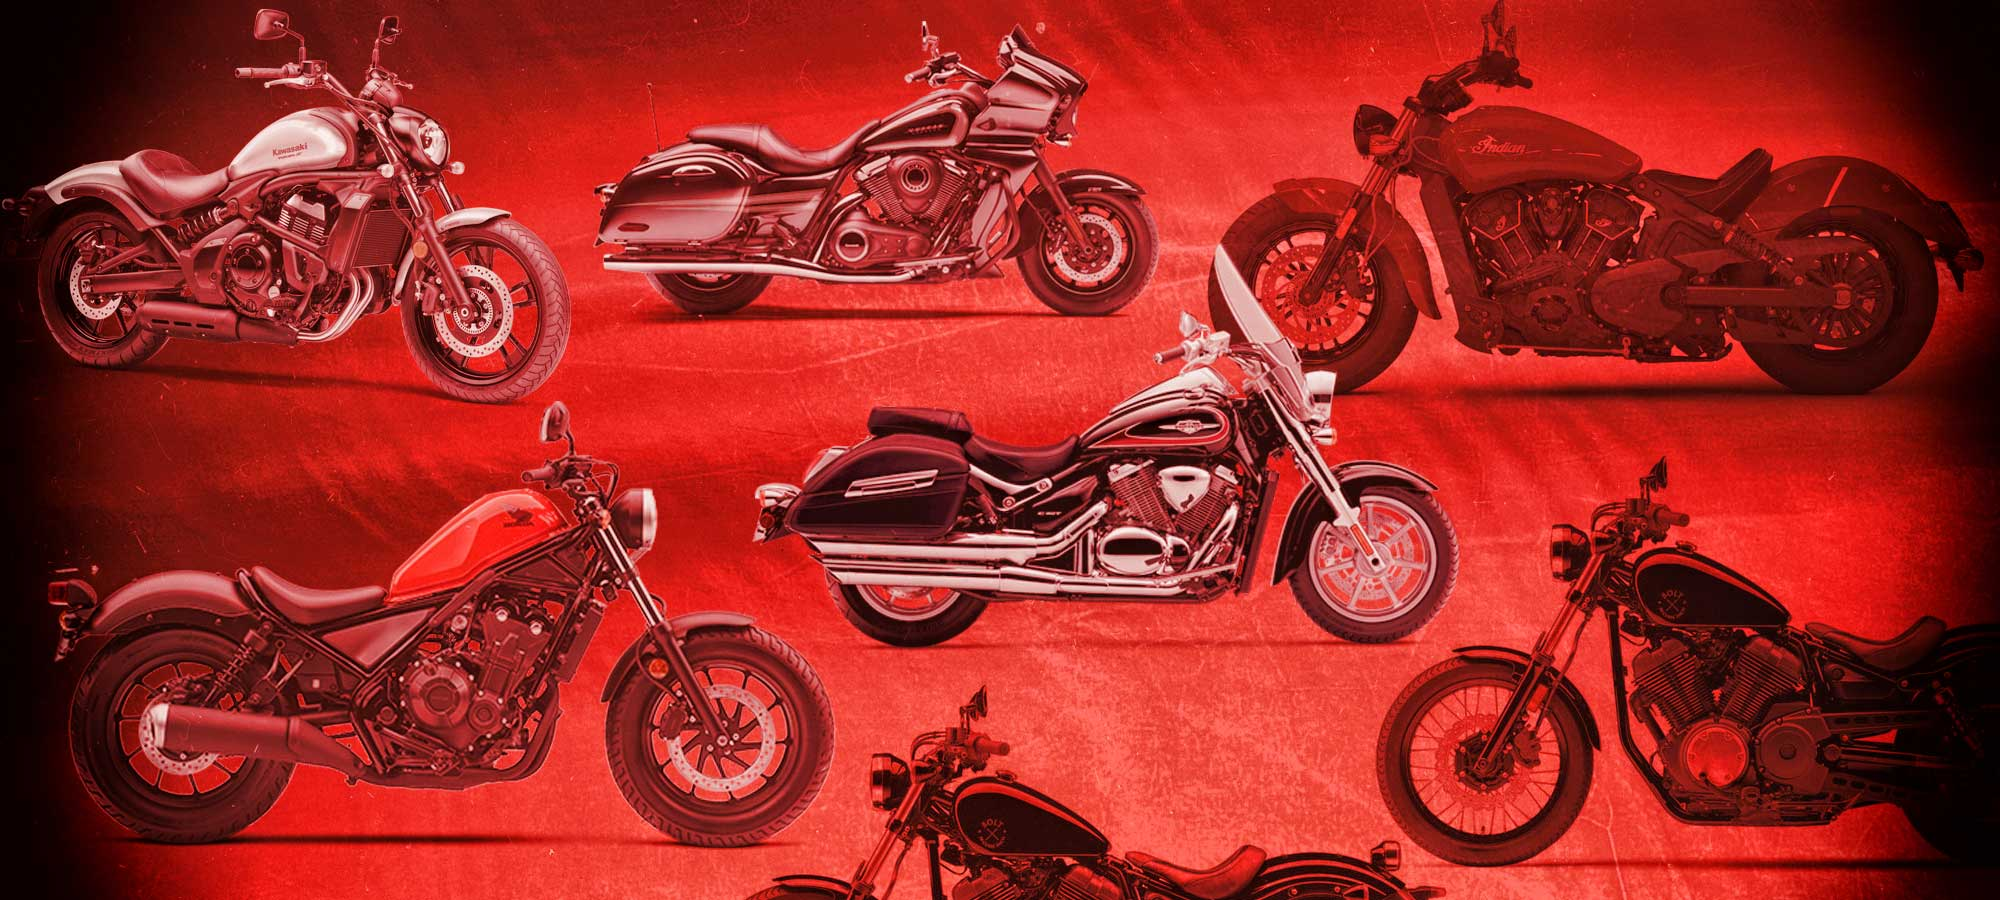 Alternatives To Harley-Davidson Cruisers